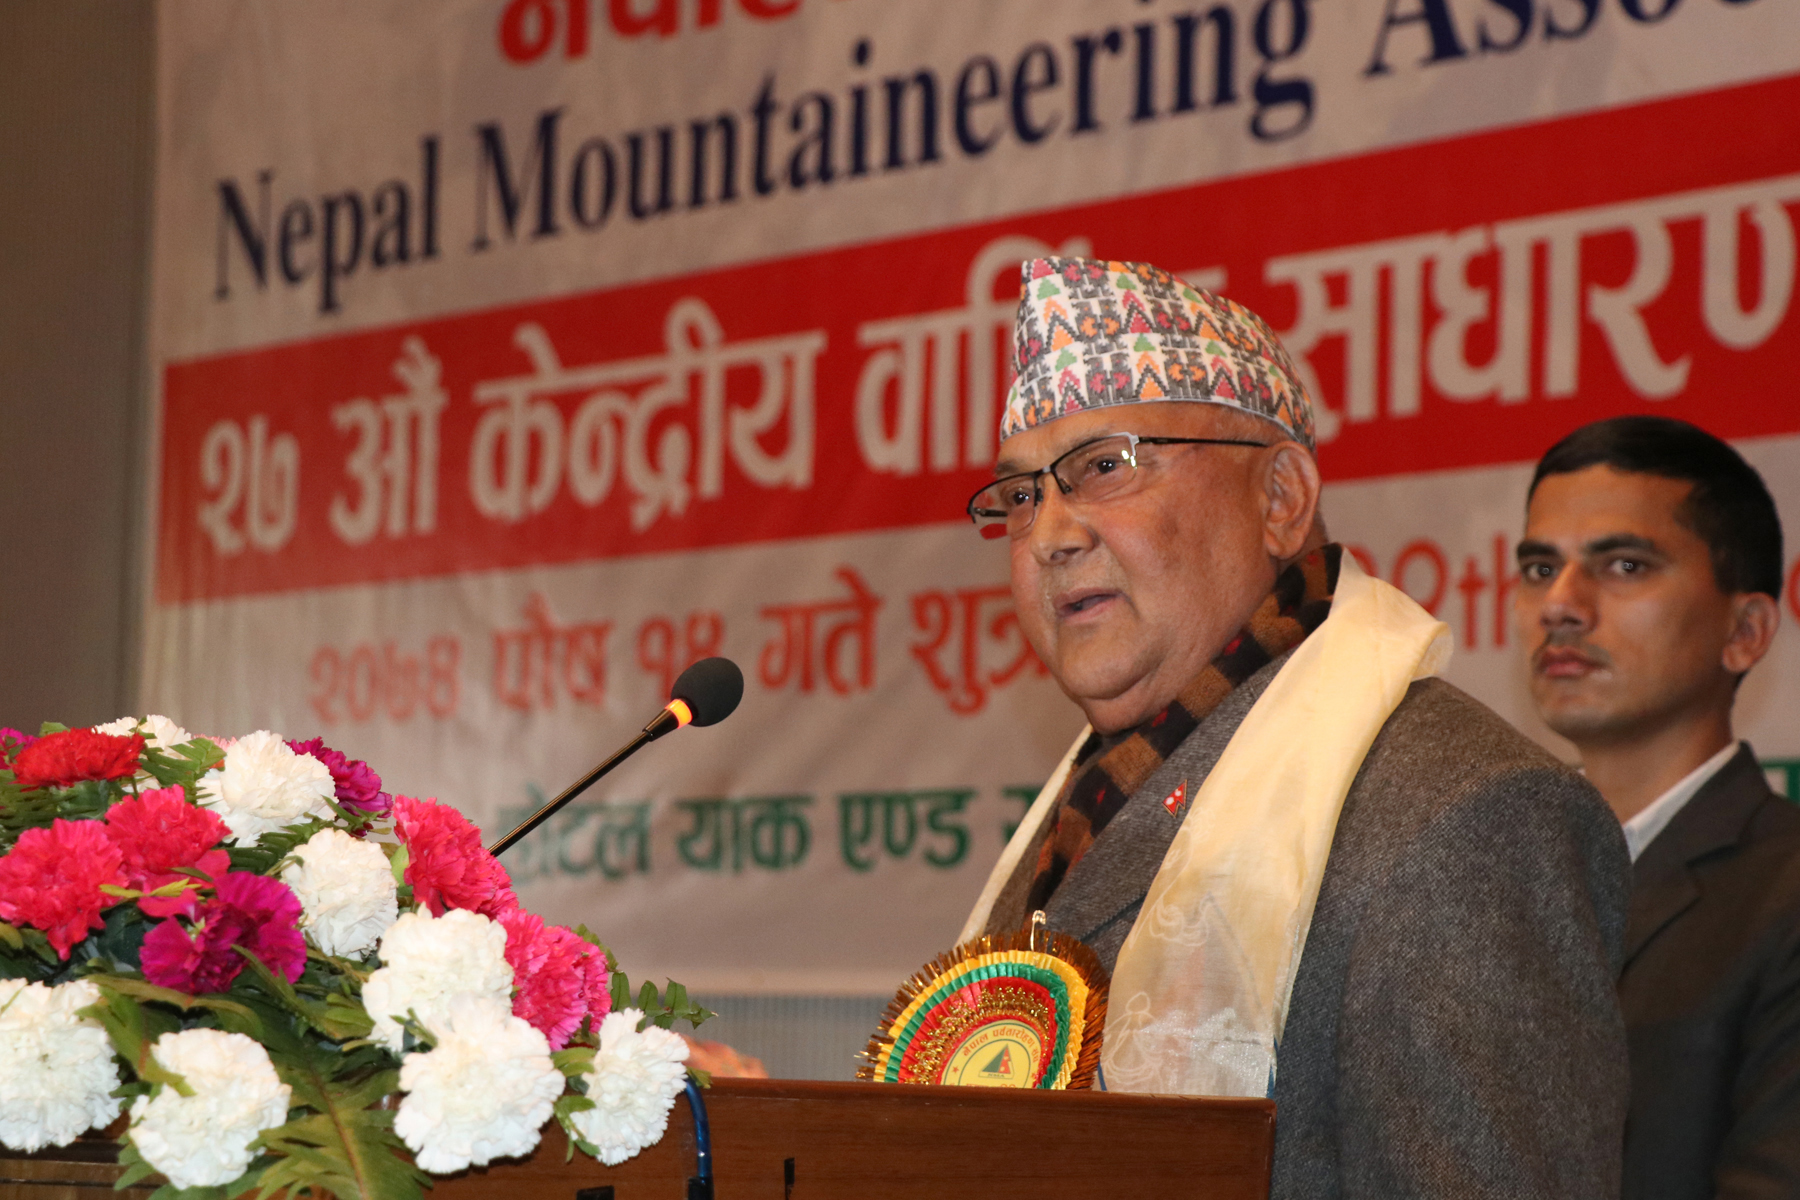 CPN UML Chair Kp Sharma Oli addressing the 27th annual general meeting of Nepal Mountaineering Association on Friday, December 29, 2017. Photo Courtesy: Nabin Poudel, RSS